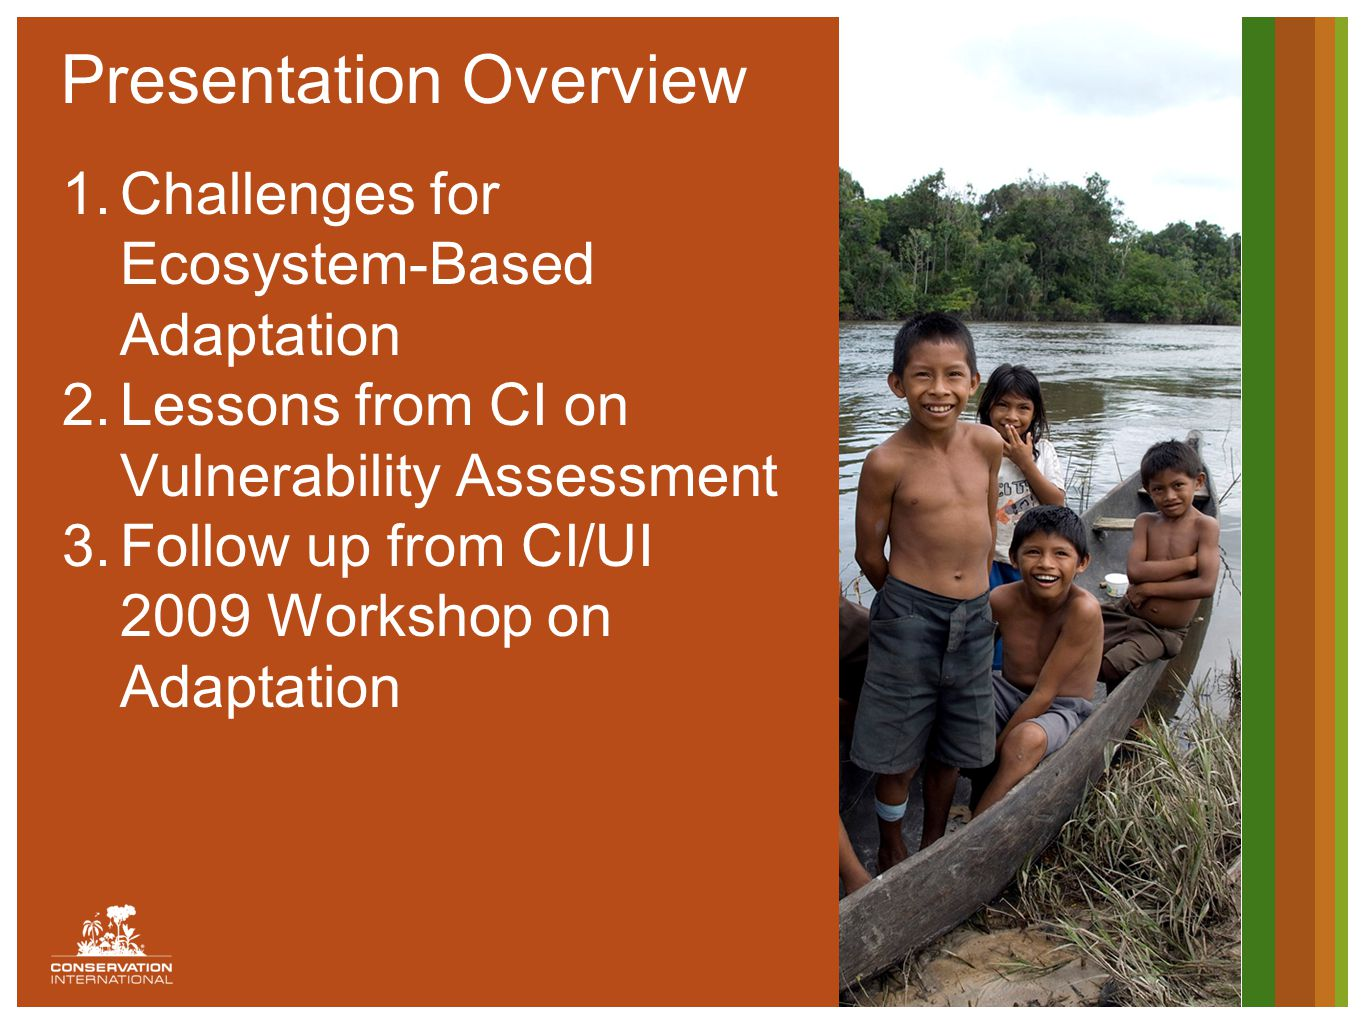 Photo 1 4.2 x 10.31 Position x: 8.74, y:.18 1.Challenges for Ecosystem-Based Adaptation 2.Lessons from CI on Vulnerability Assessment 3.Follow up from